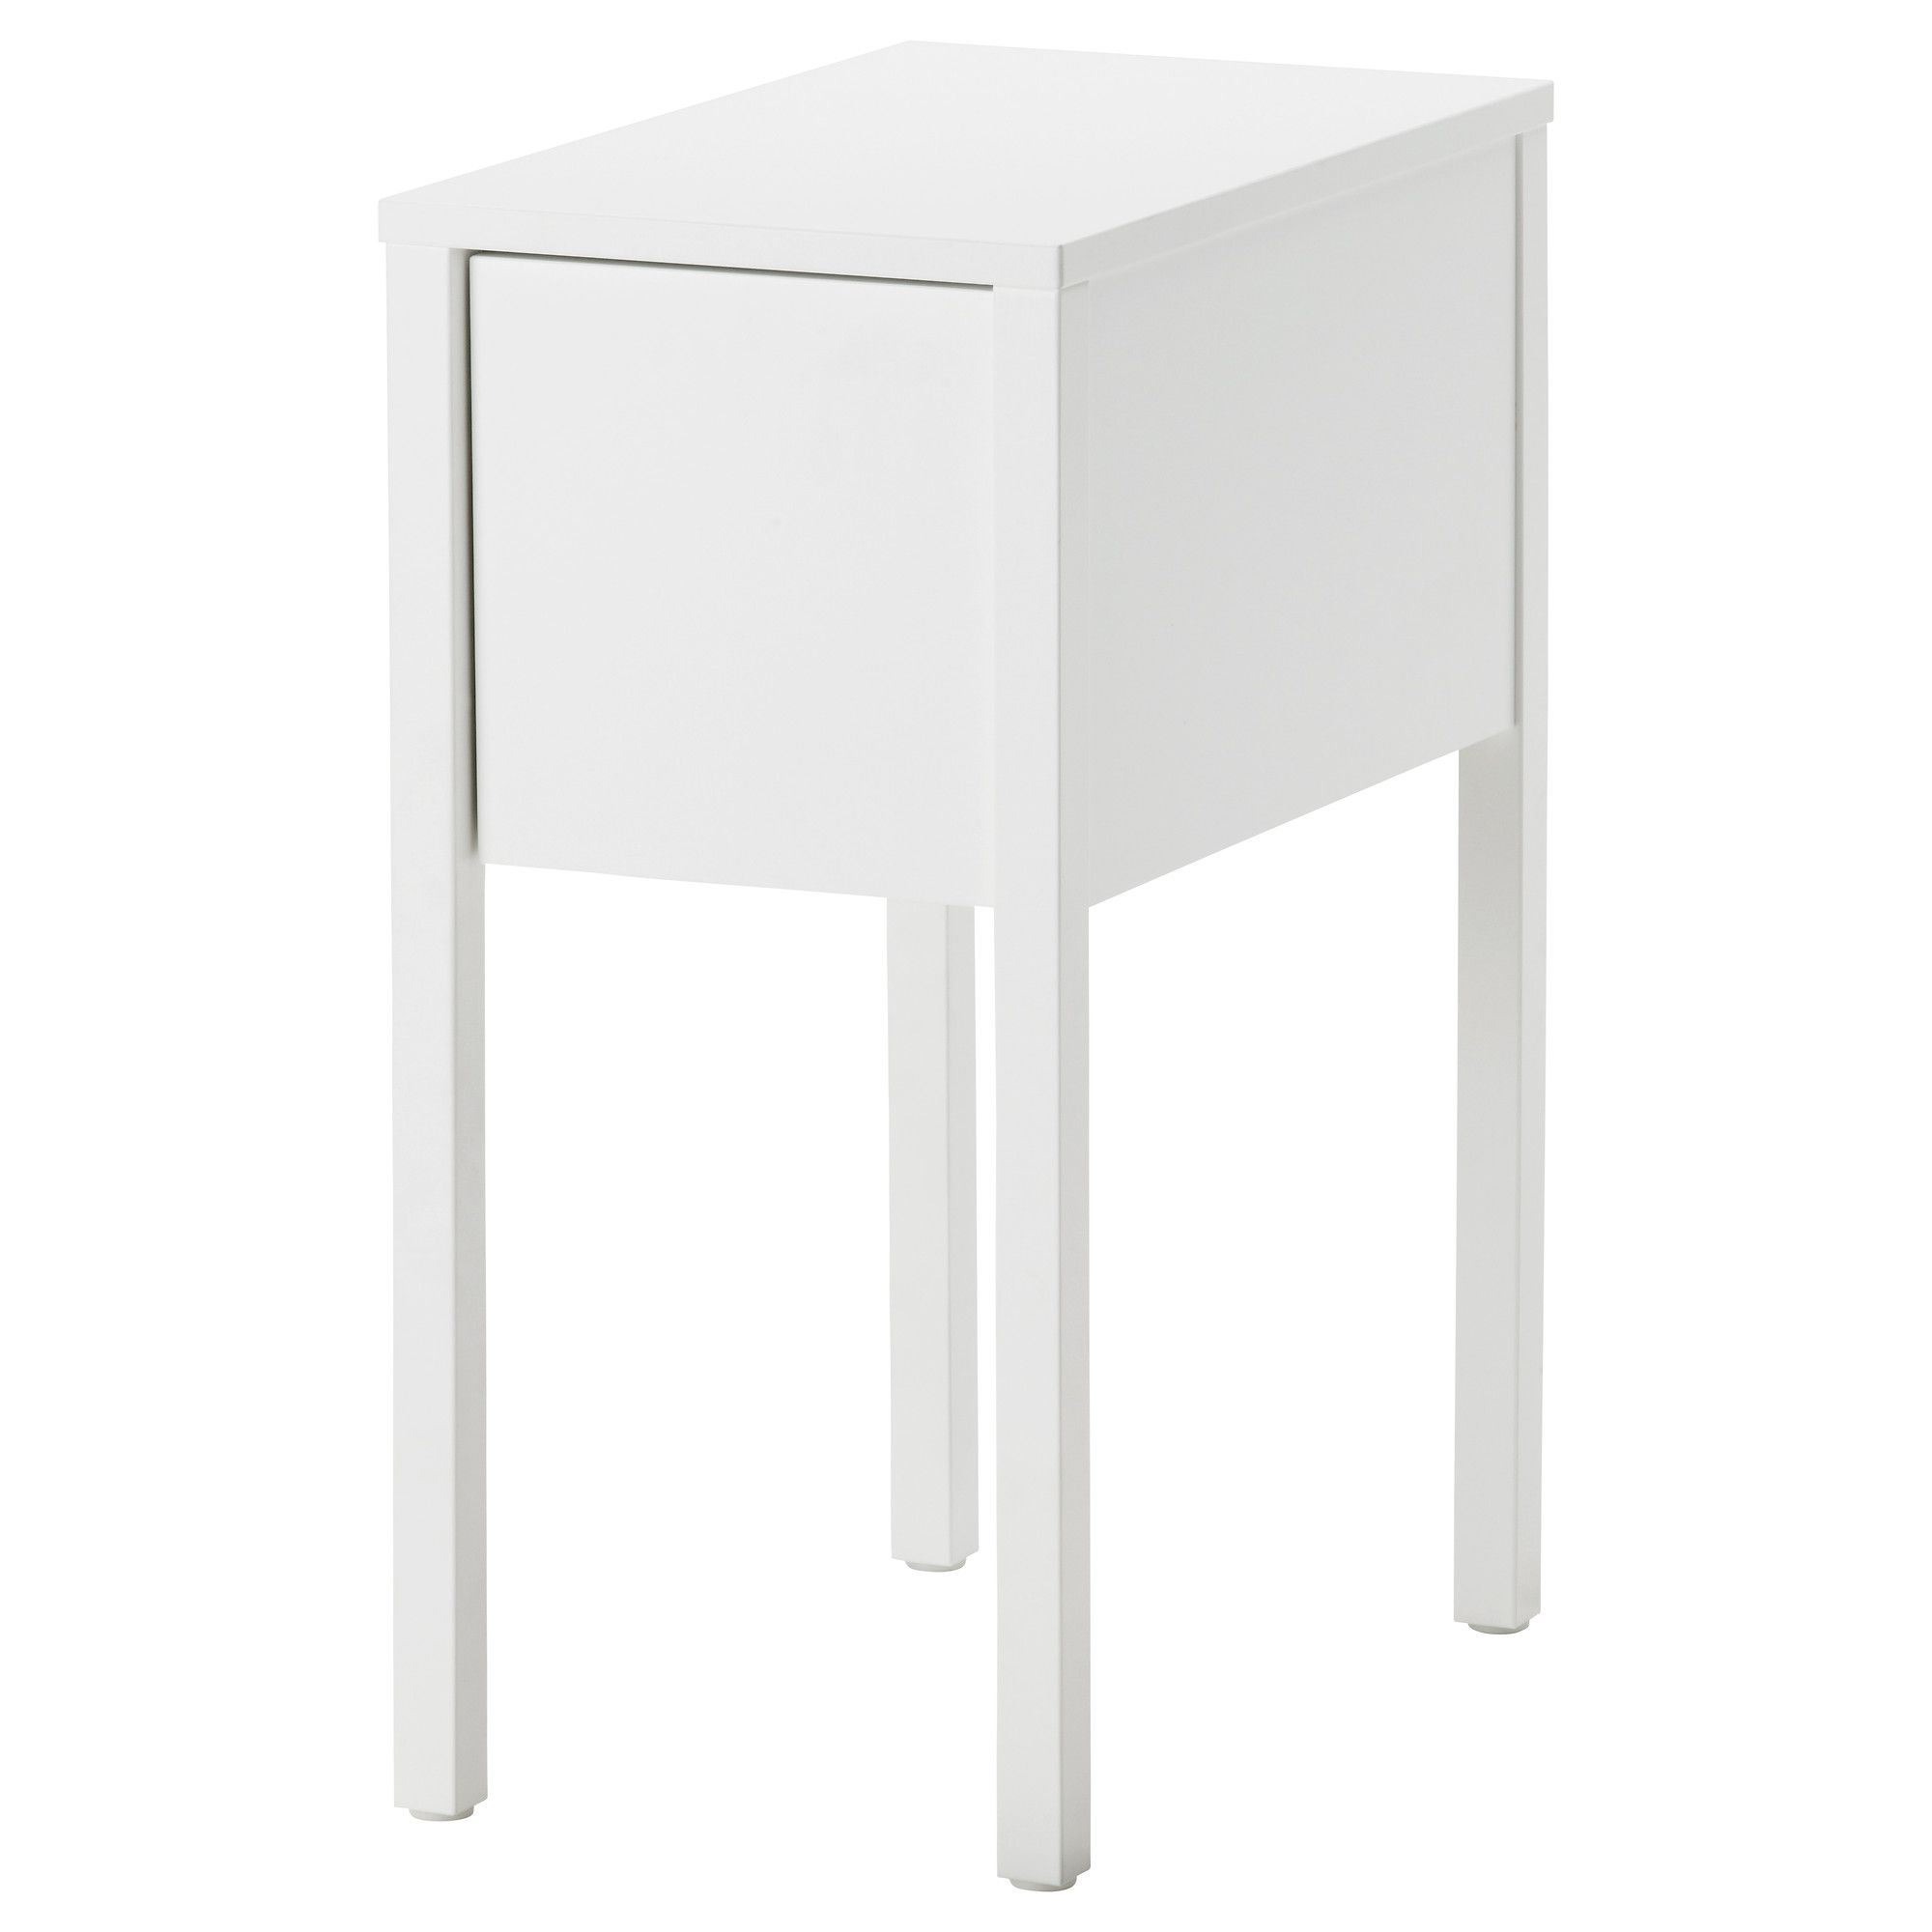 chevet blancTable de NORDLI de chevet Table ikeaTable w0Pnk8OX